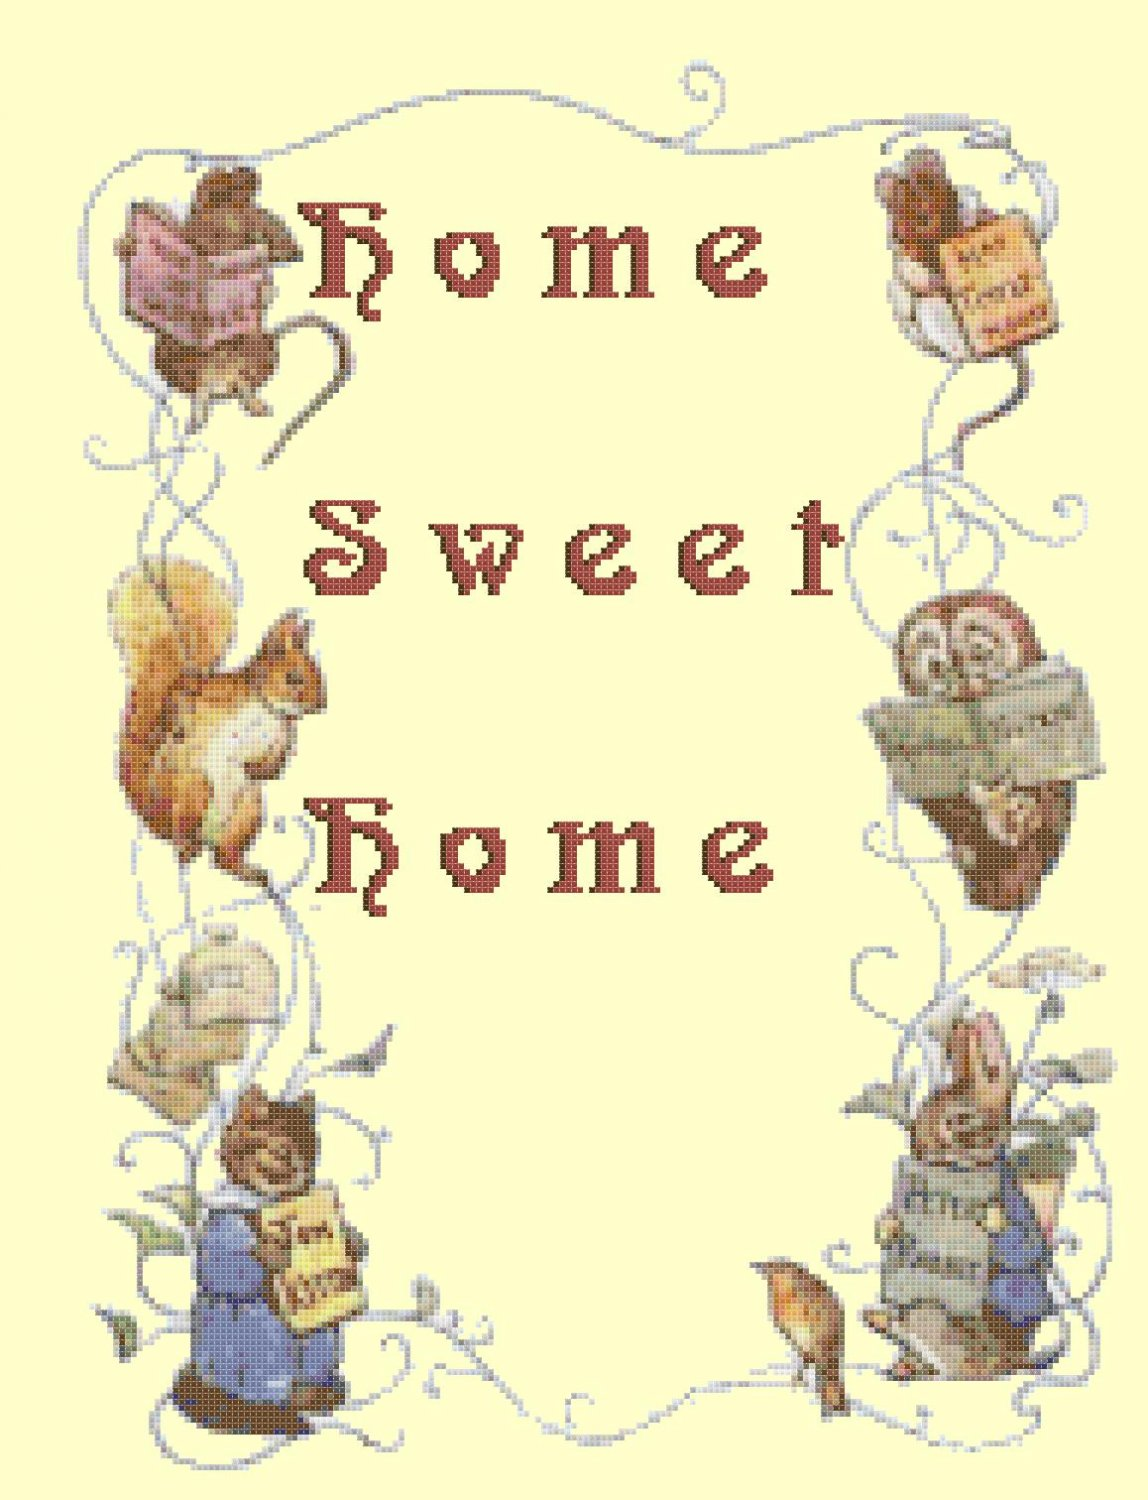 counted cross stitch pattern Home sweet home potter pdf 175*237 stitches E1154